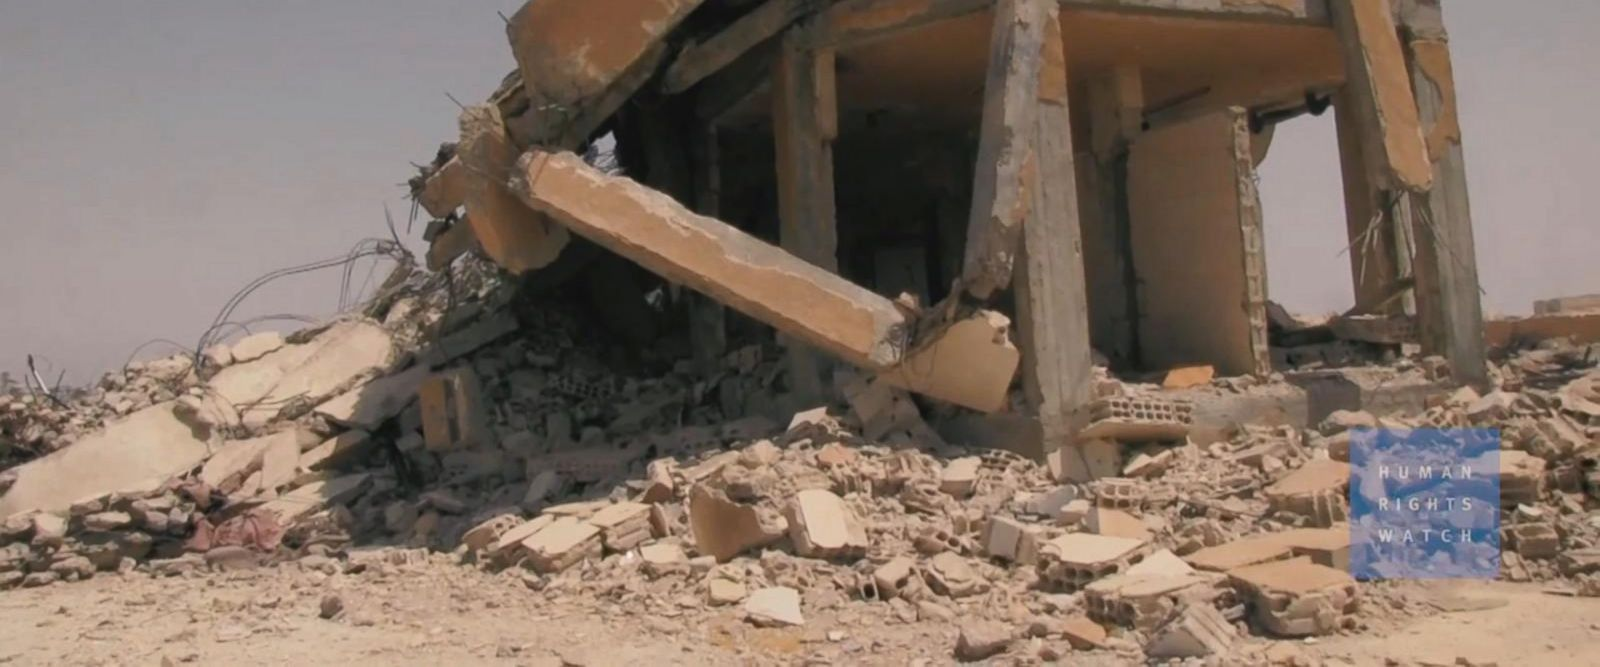 VIDEO: New video shows destruction near Raqqa after coalition strikes